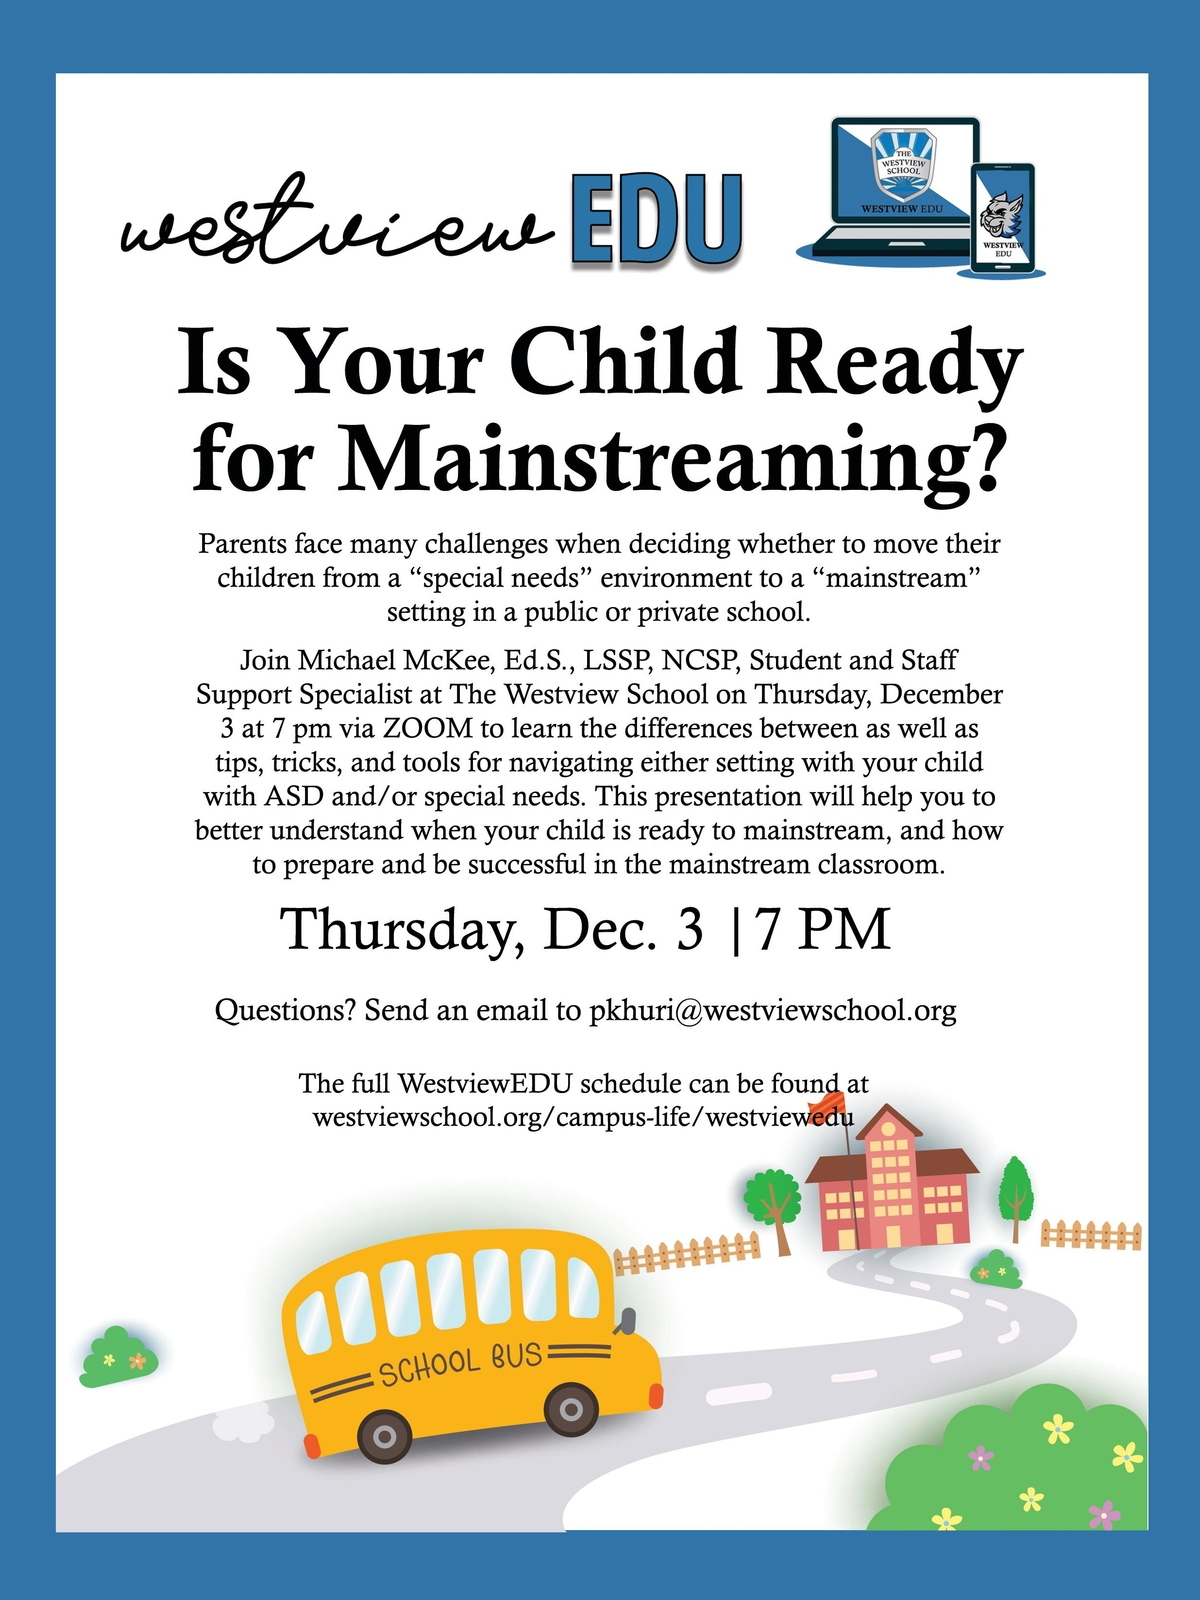 Westview EDU: Is Your Child Ready for Mainstreaming?